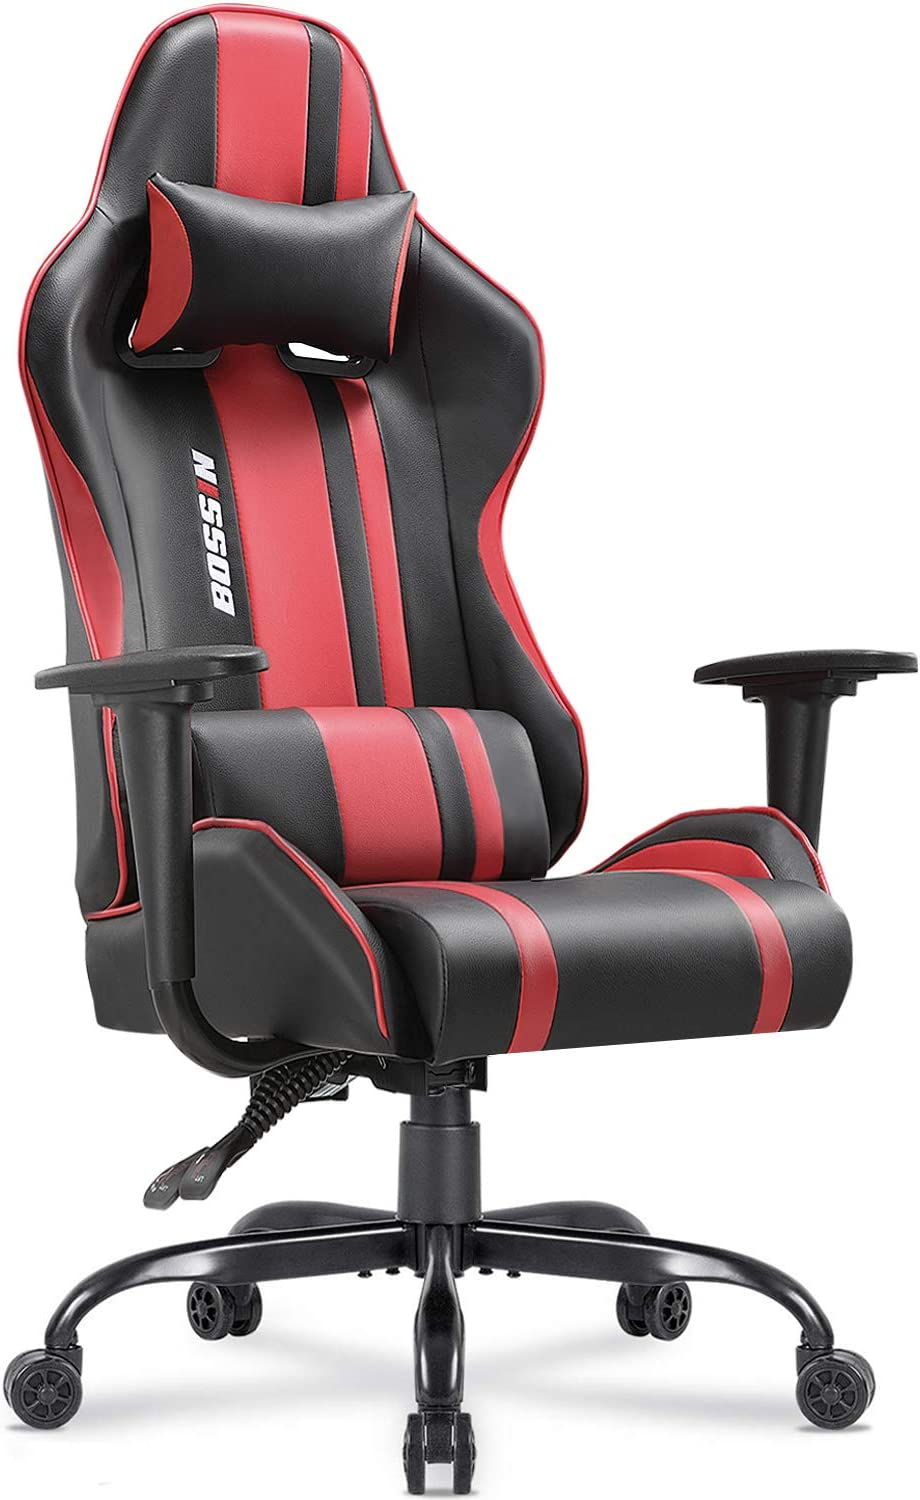 Bossin Gaming Chair Racing Style High-Back Computer Chair Swivel Ergonomic Executive Office Leather Chair Video Gaming Chair Red